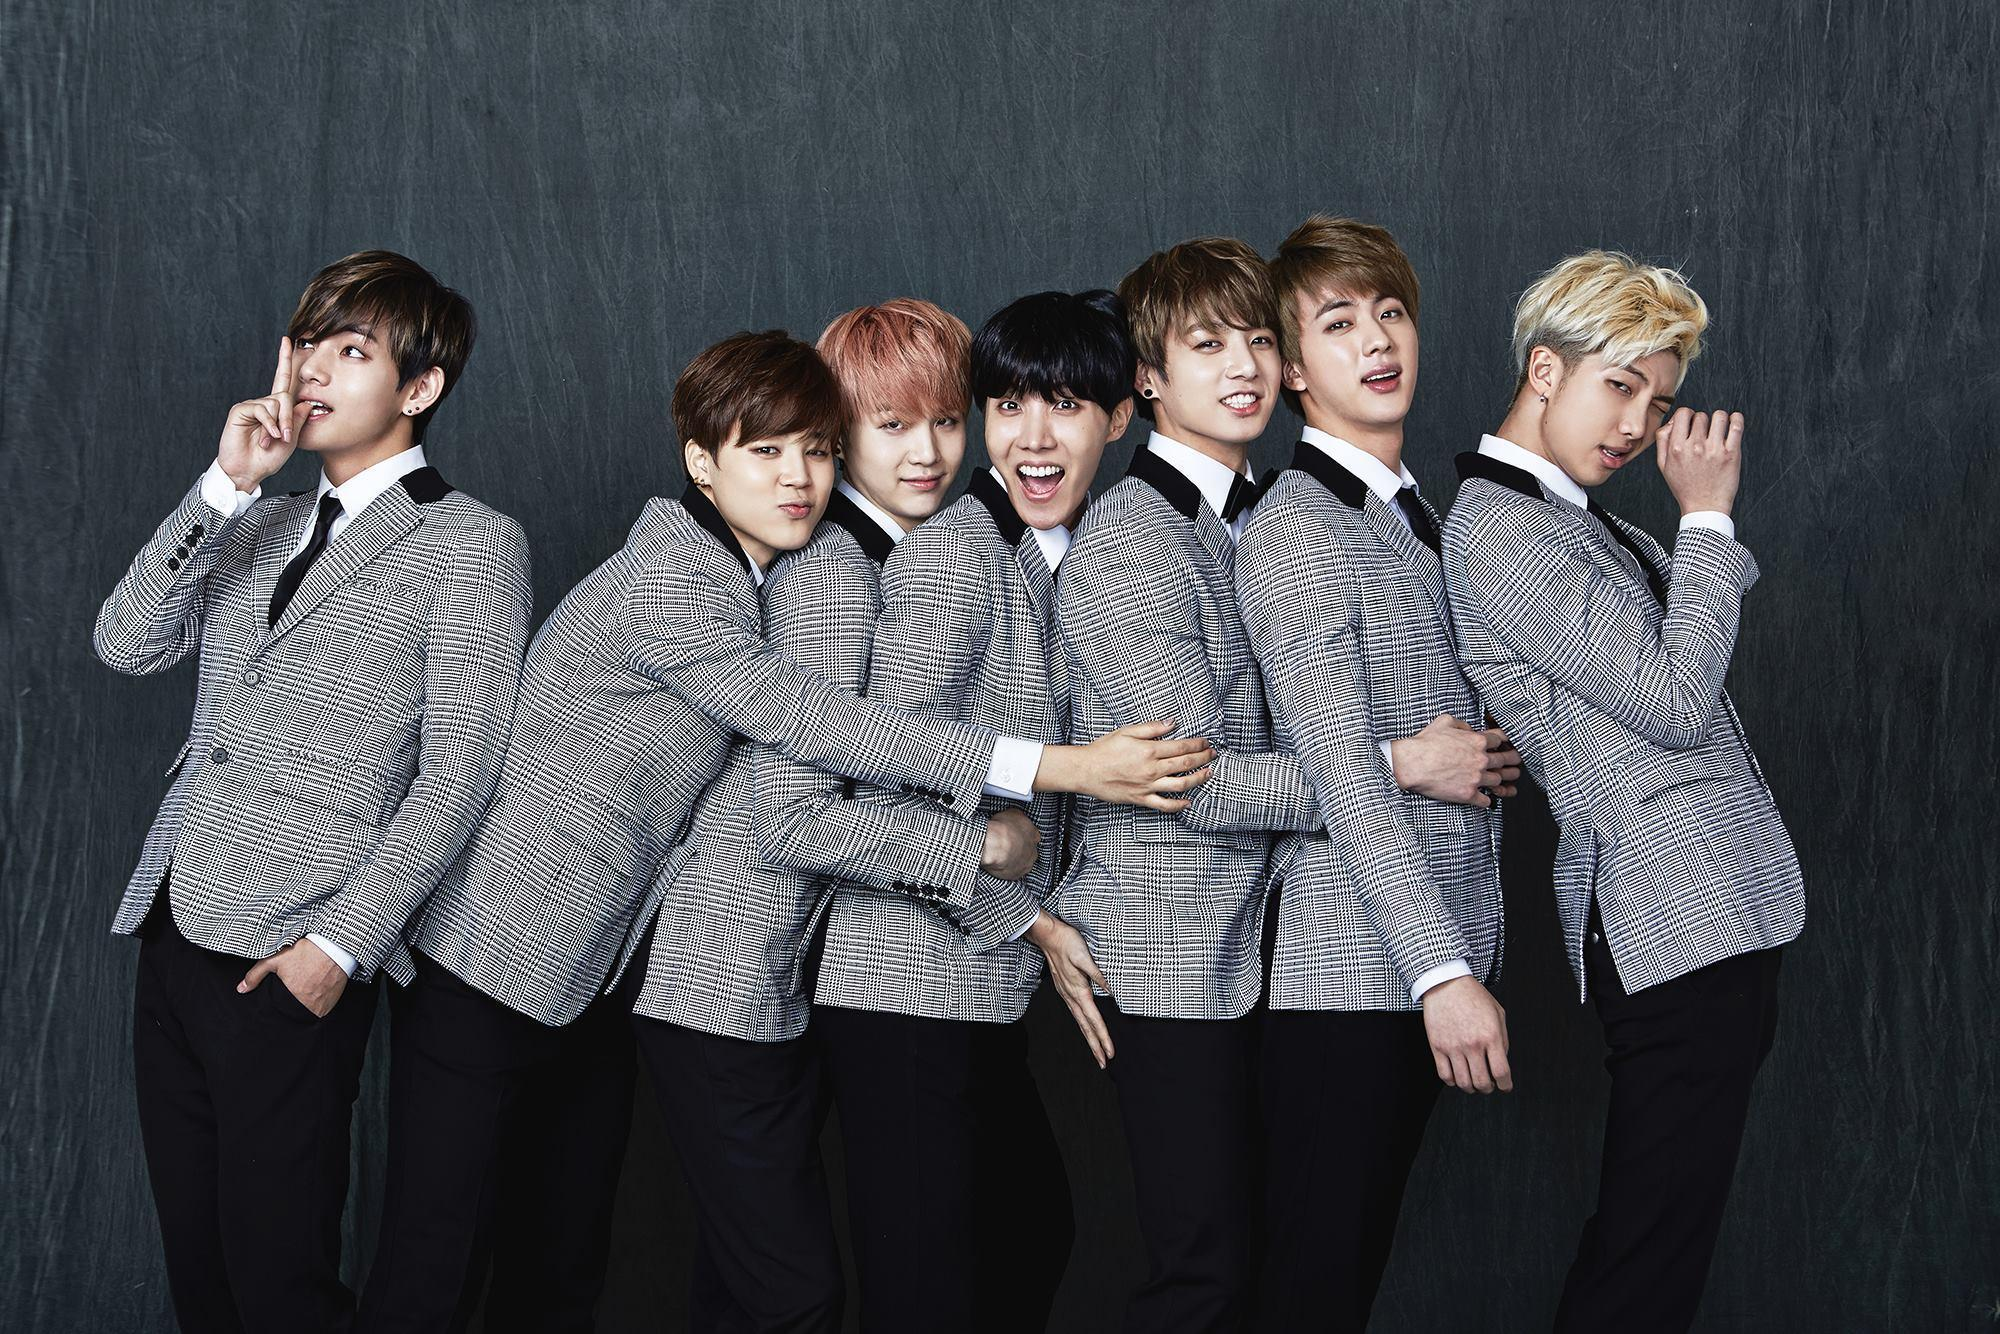 Bts wallpapers wallpaper cave for Best group pictures